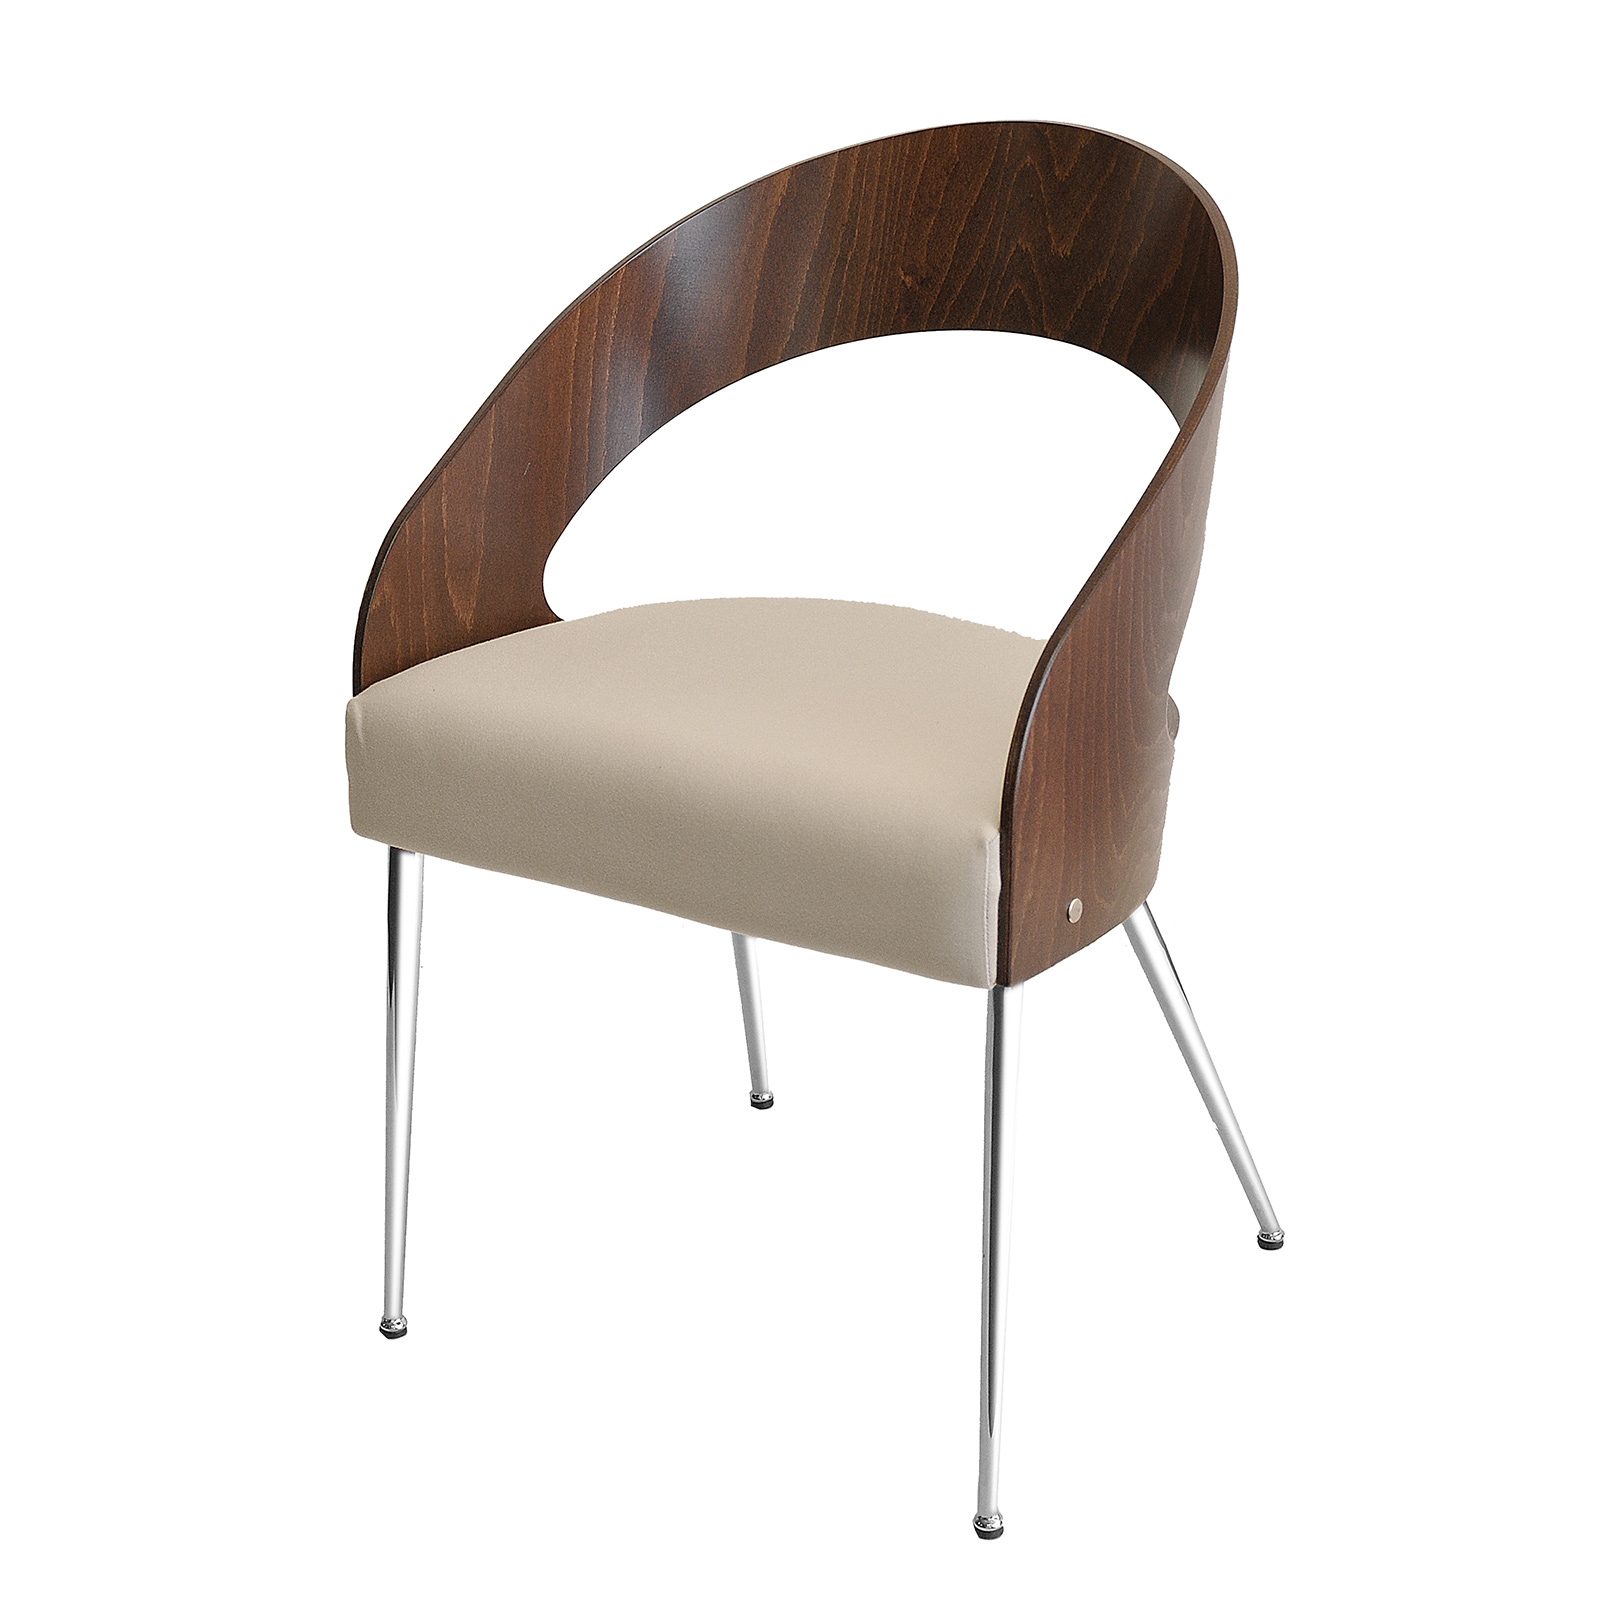 Florida Seating CN-EMILY H S GR7 chair, lounge, indoor